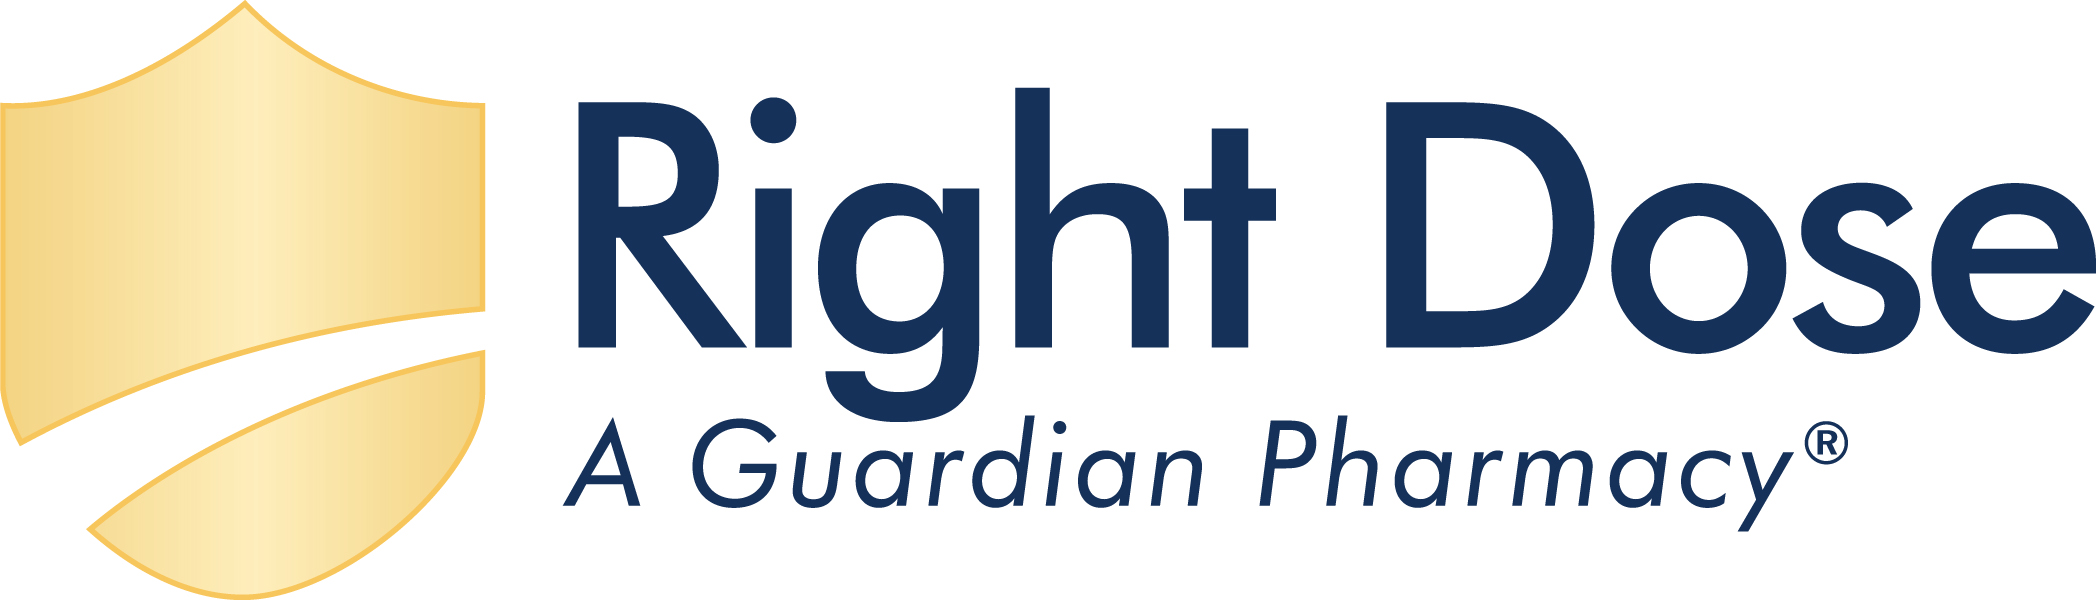 Right Dose, A Guardian Pharmacy